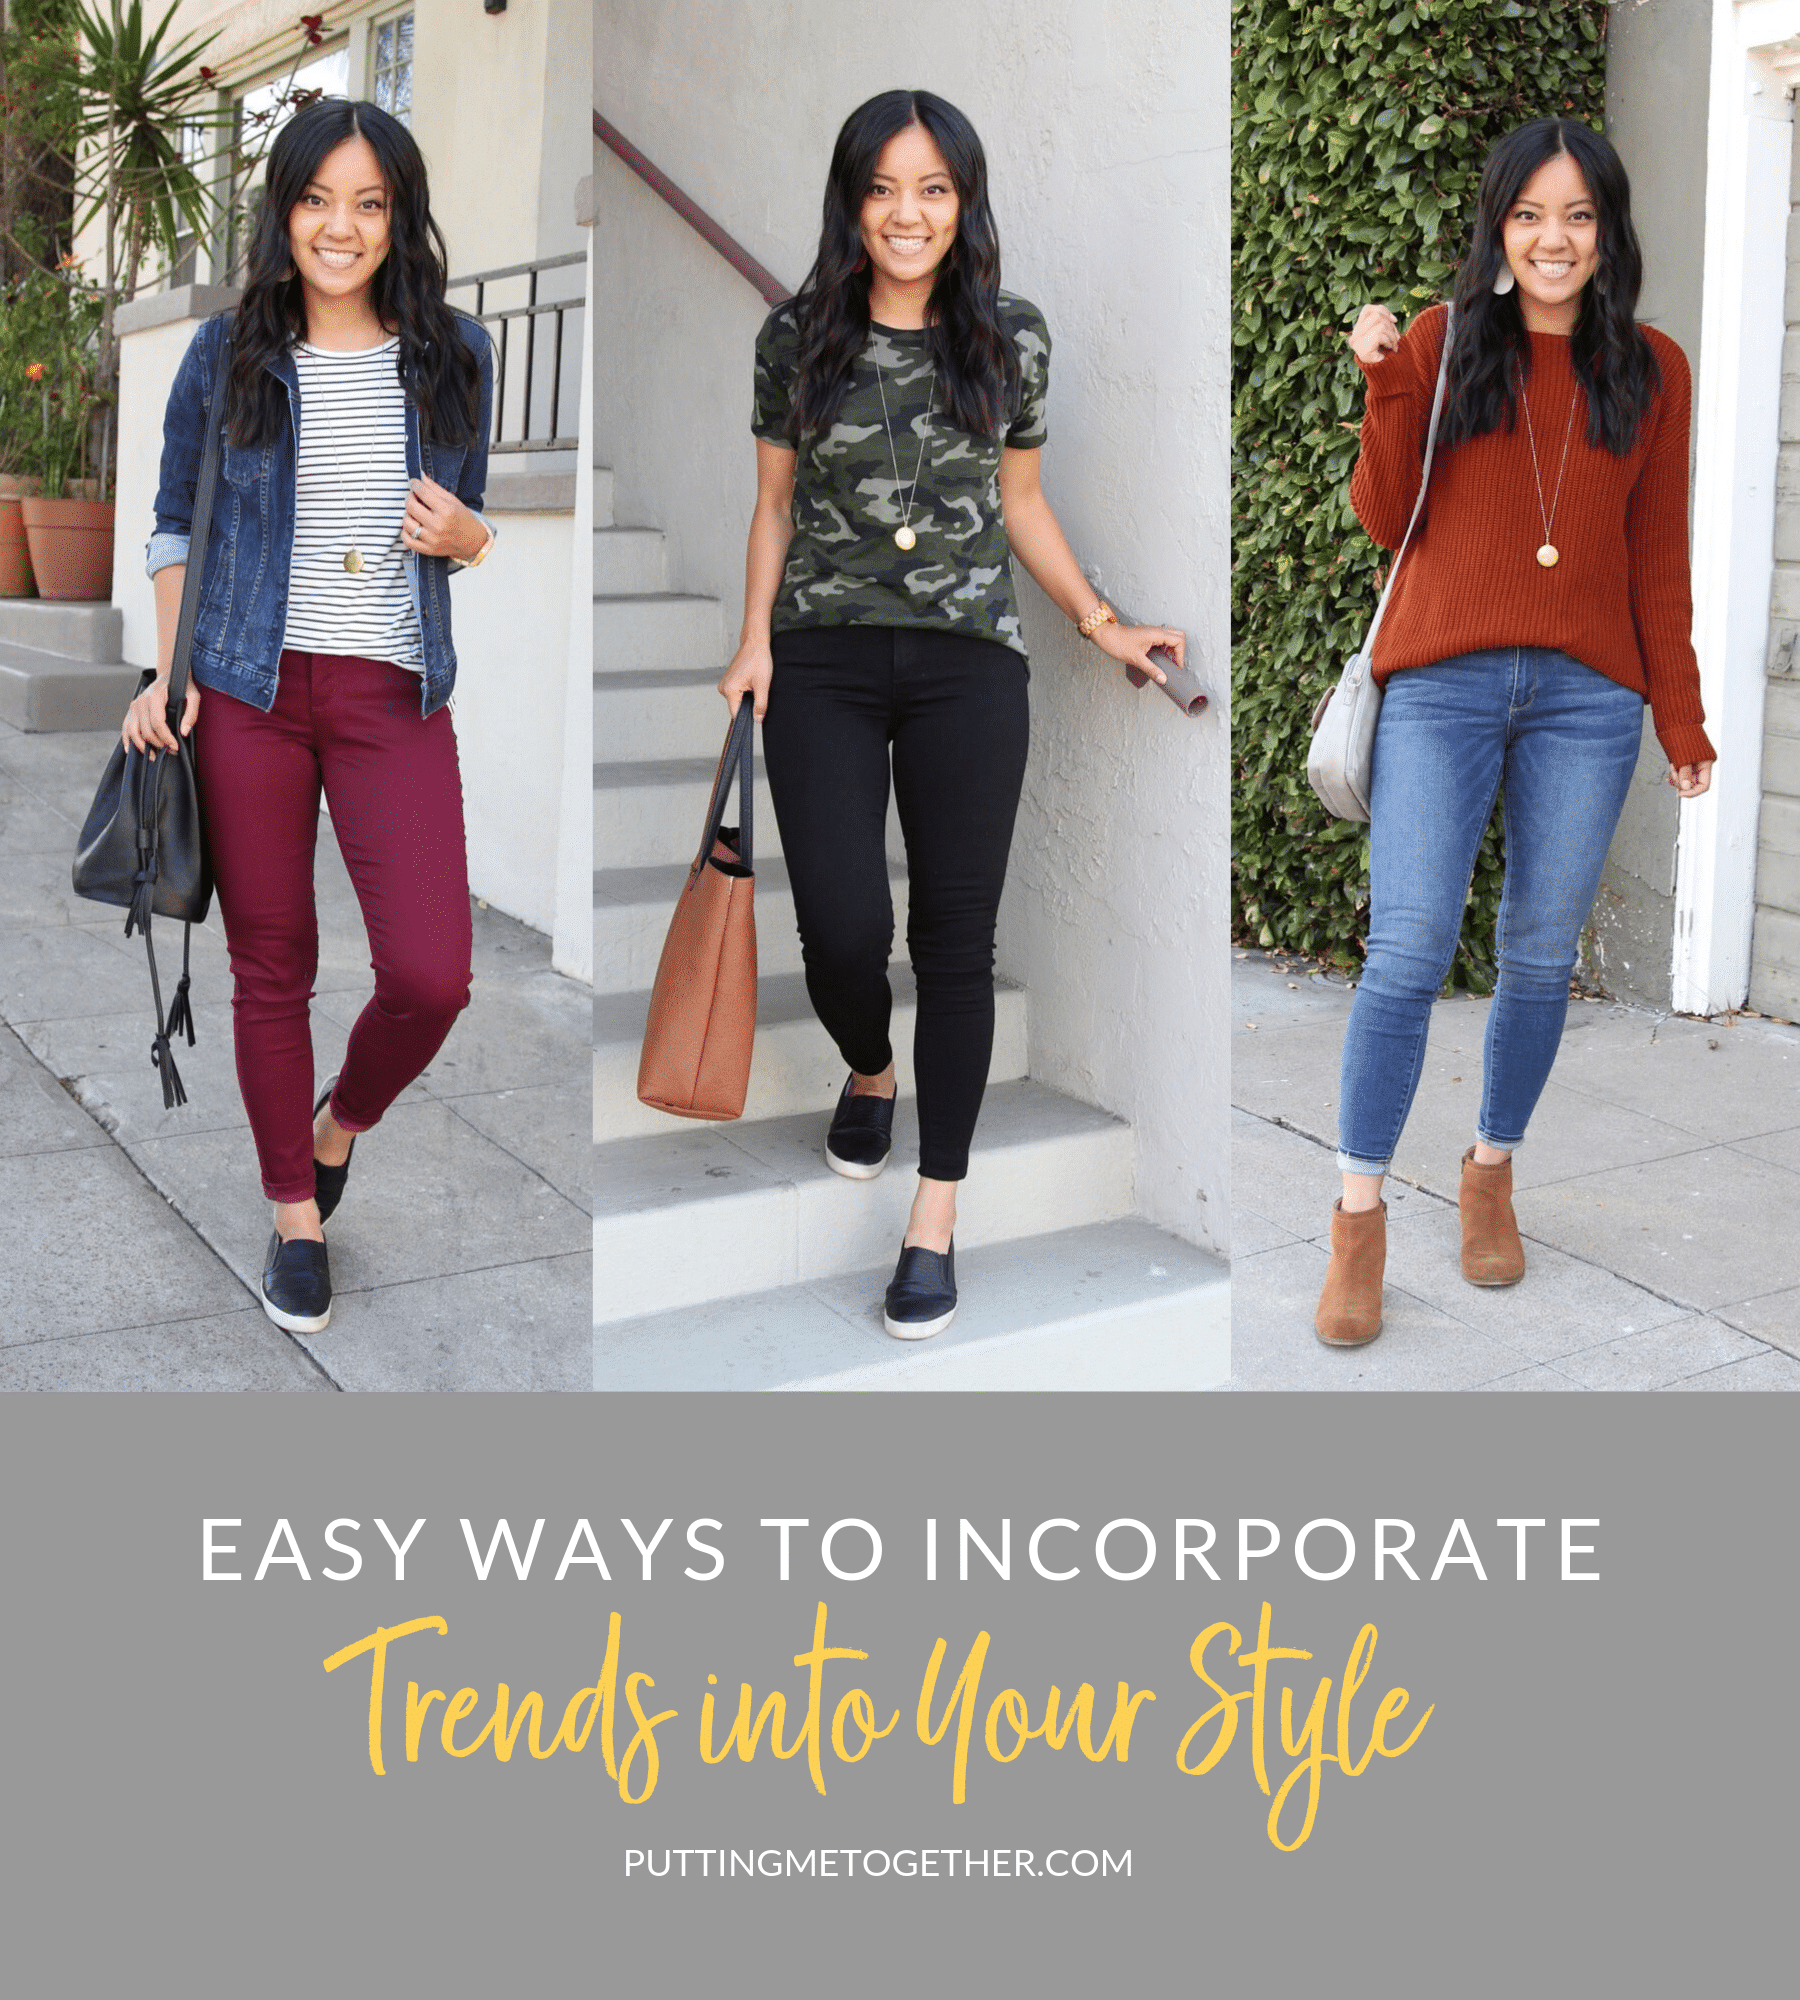 Easy ways to incorporate trends into your style